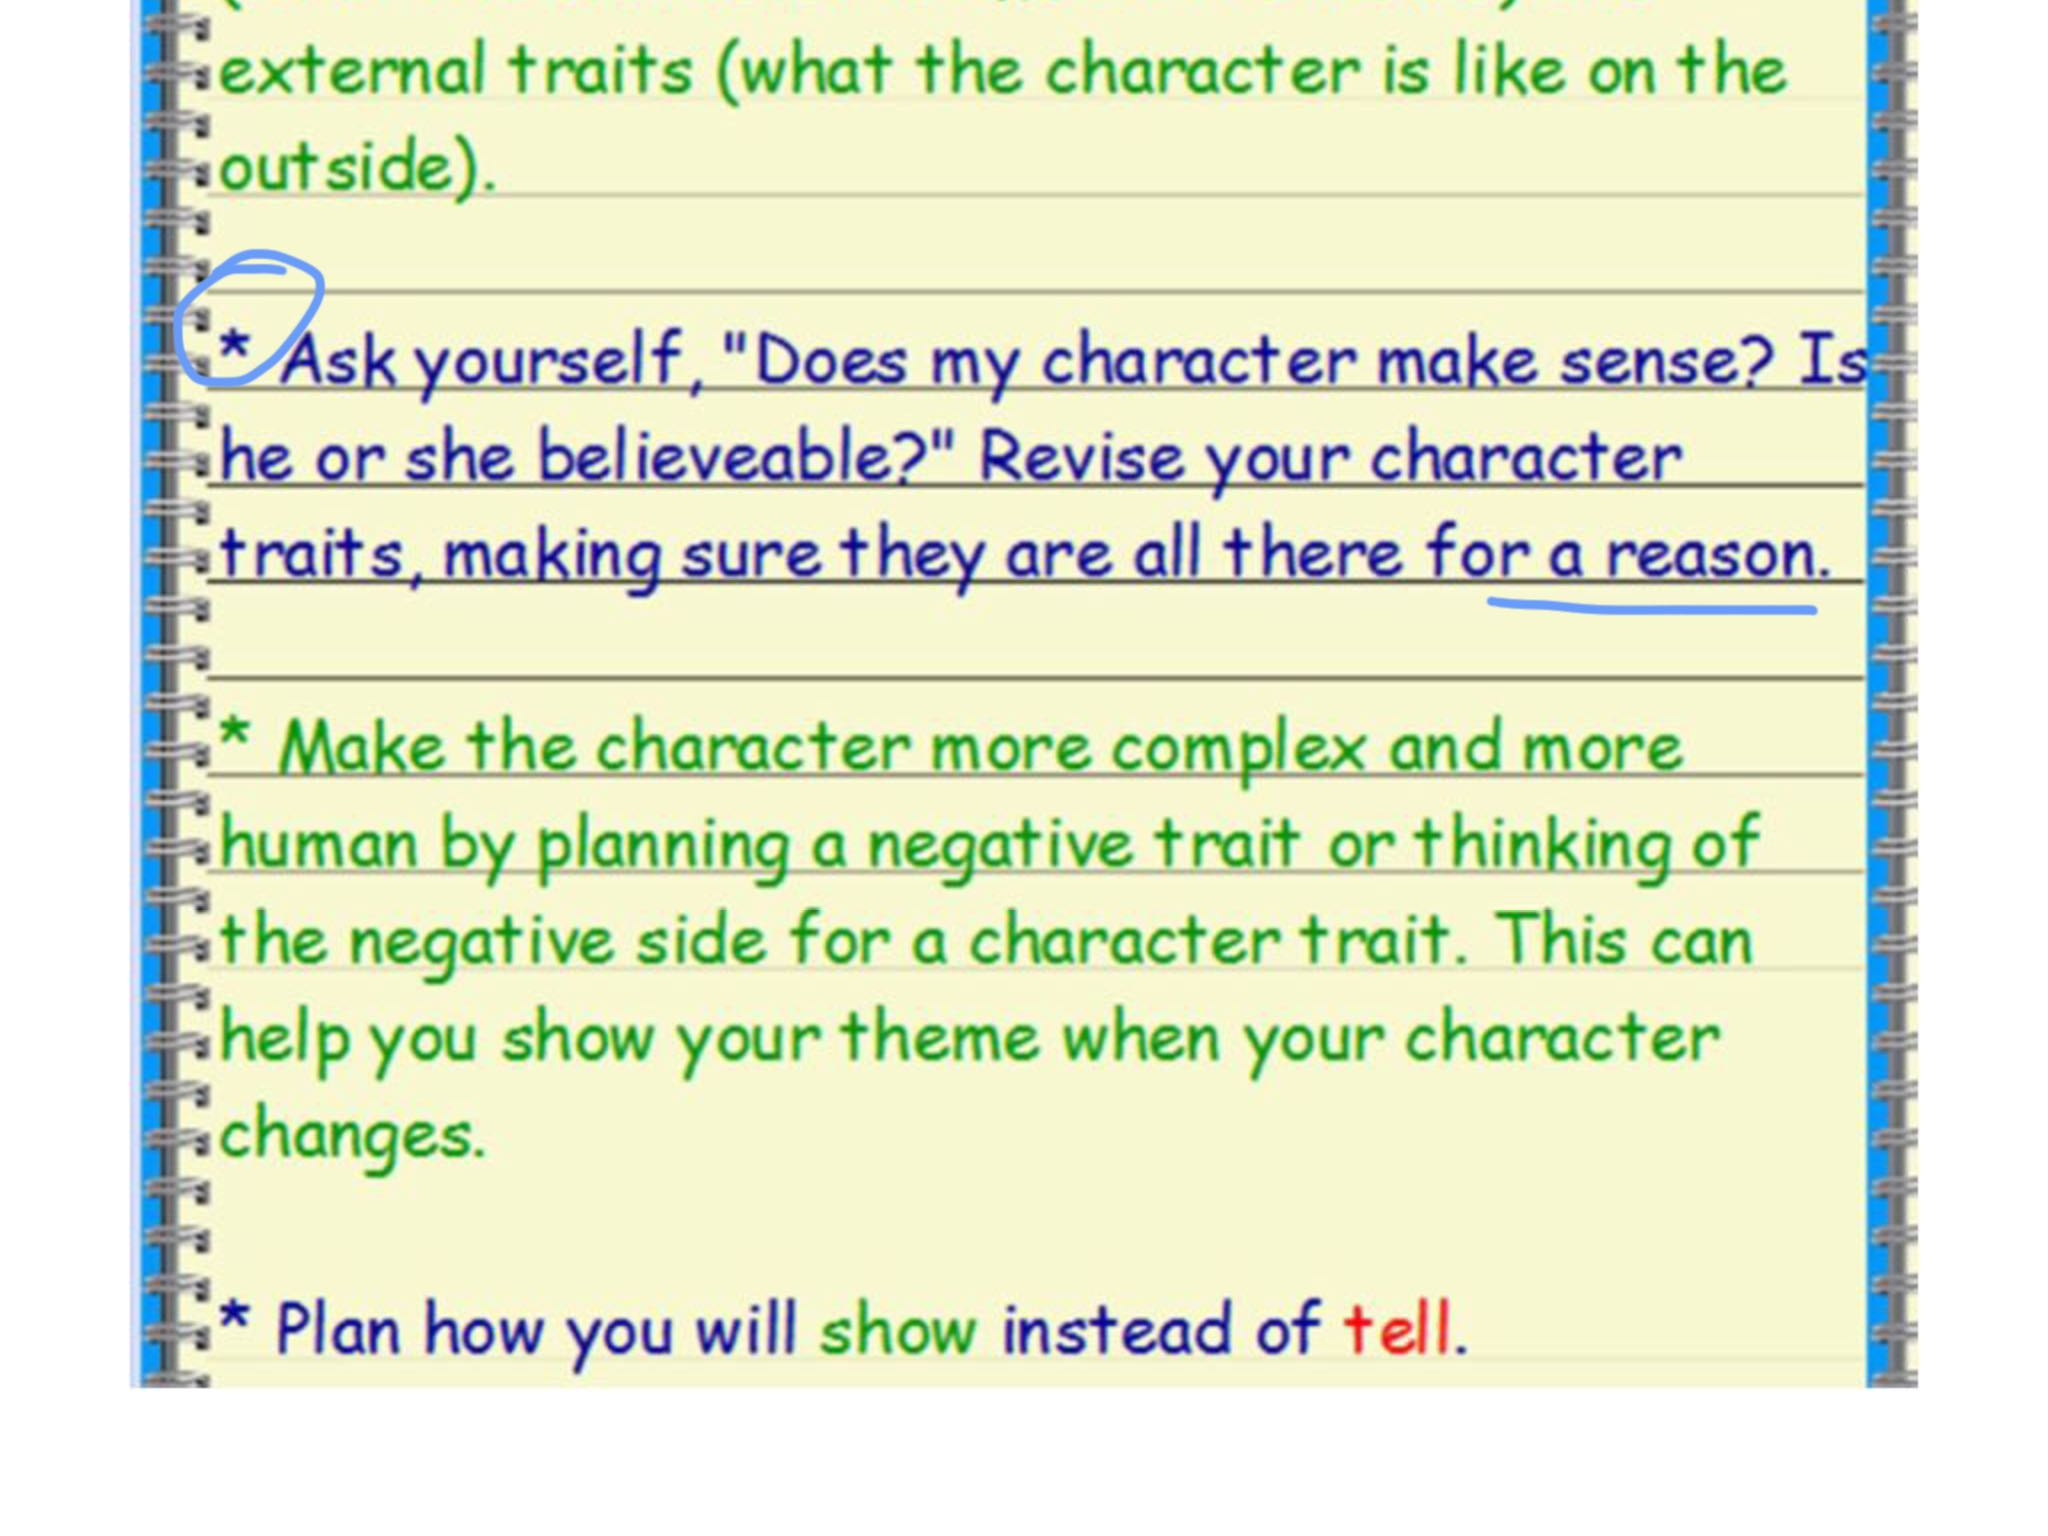 Create your characters' problem, negative character traits, and motivation (what s/he wants).